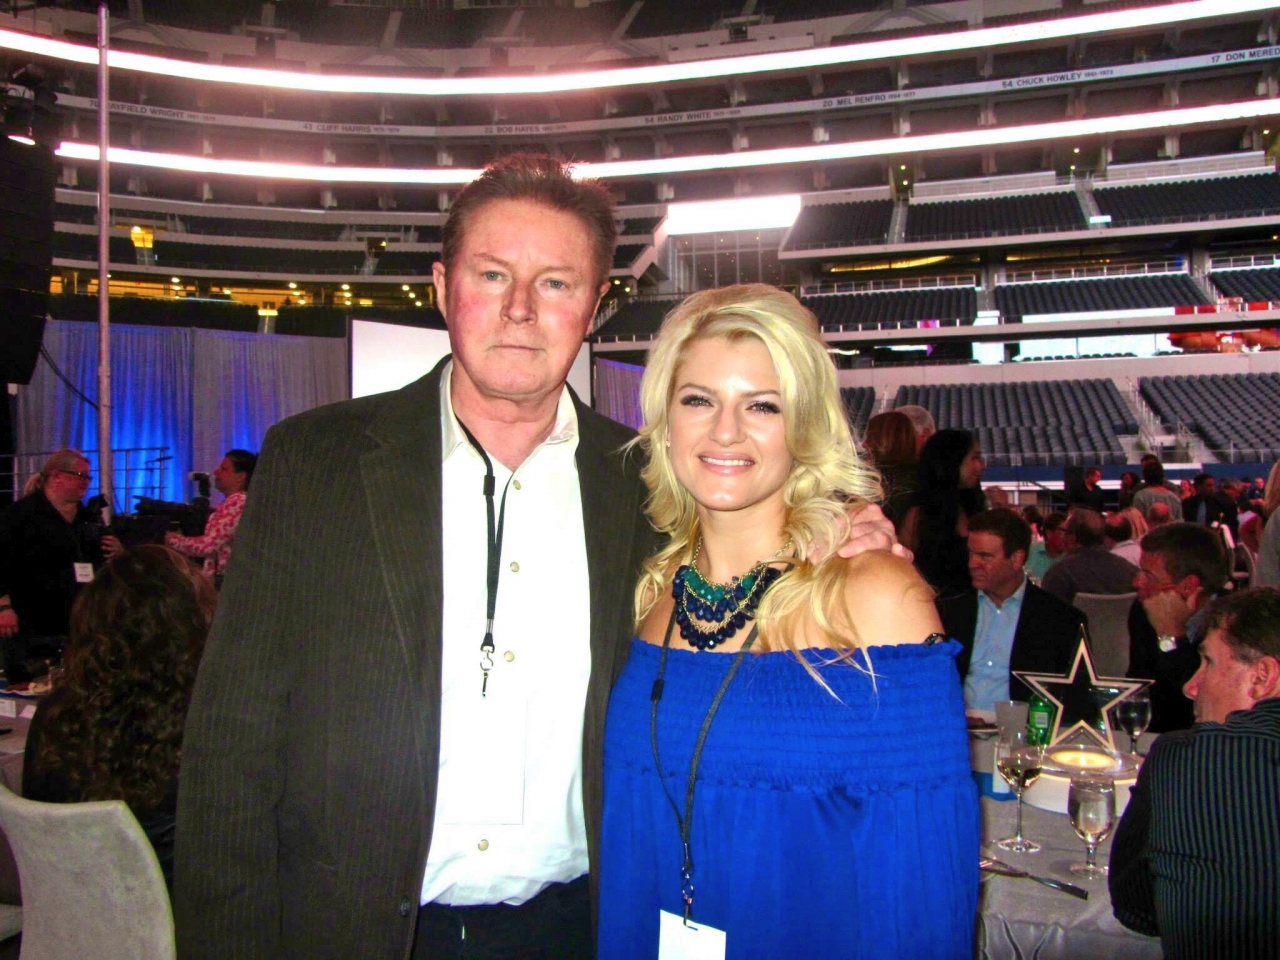 Jackie Leigh and Don Henley  - Jackie Leigh and Don Henley (The Eagles) at Dallas Cowboys Stadium. Todd Wagner Foundation Event. This man was a huge influence on my vocal melody arrangements when writing. Huge idol.